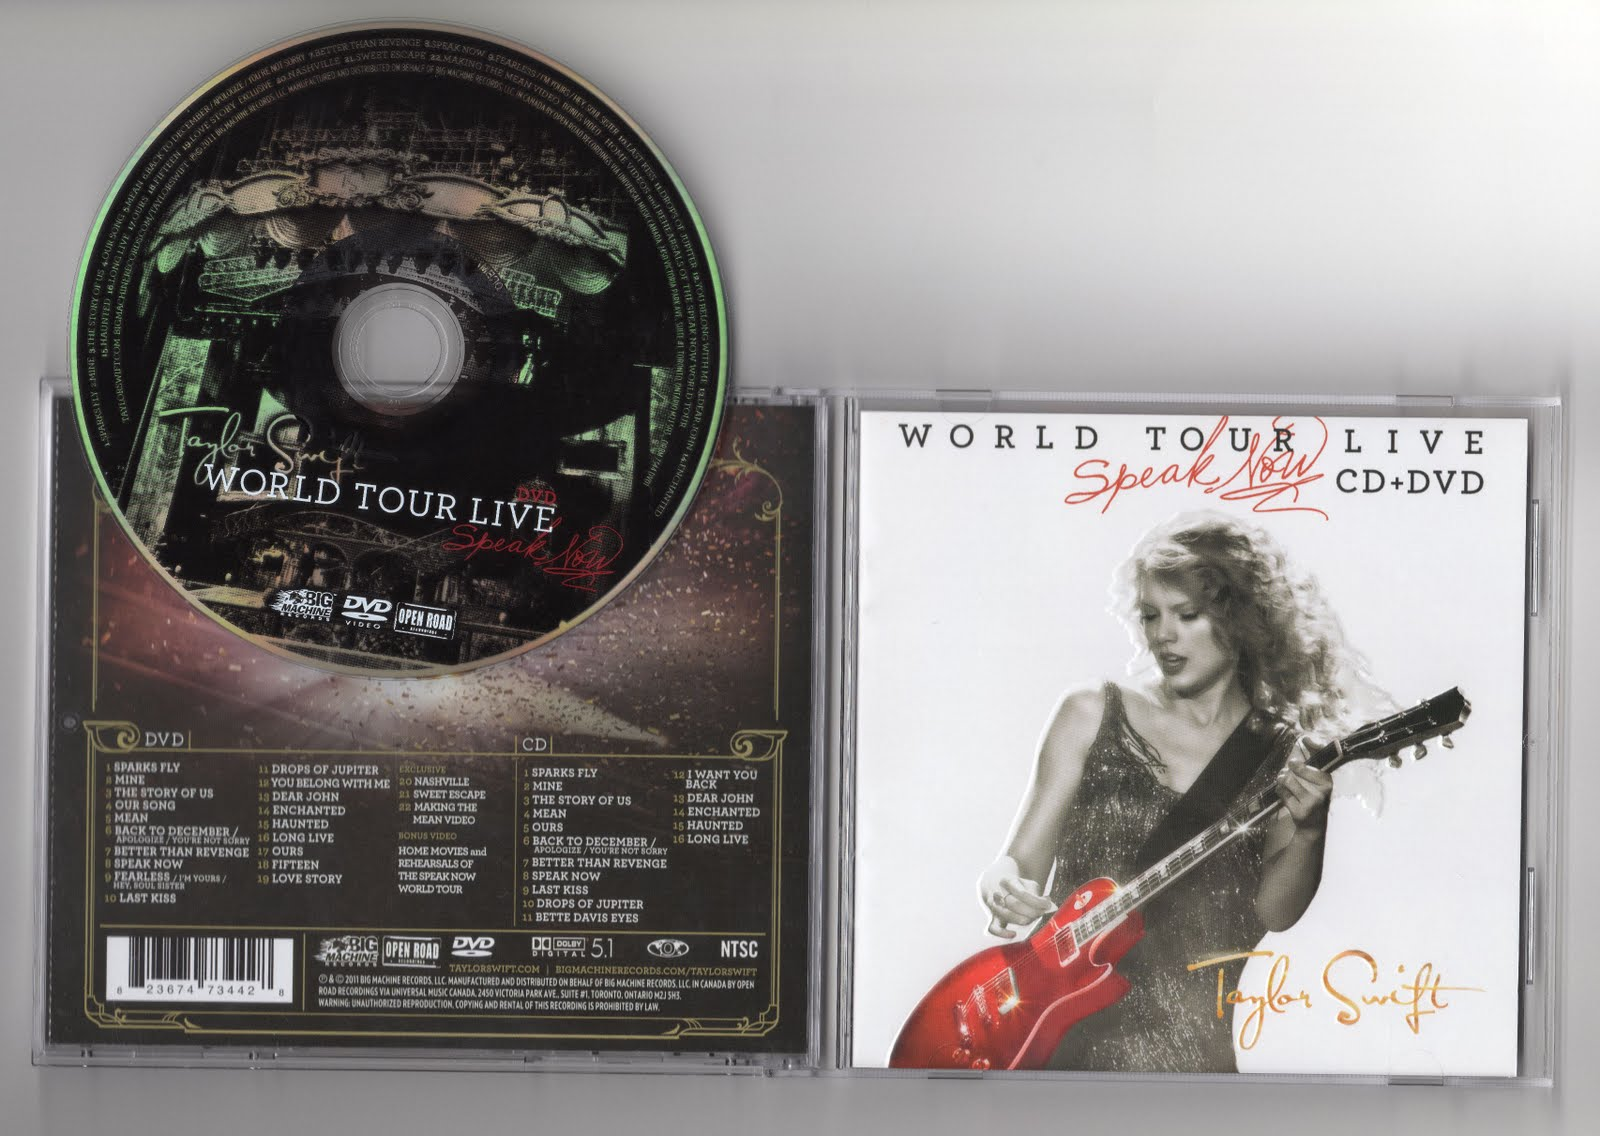 http://2.bp.blogspot.com/-J5_Ffqcx0Hk/TtSMVJLvxTI/AAAAAAAAHFw/6wU3-AVjuRE/s1600/000-taylor_swift-speak_now_world_tour_live-%2528deluxe_edition_bonus_dvd%2529-2011-scan.jpg